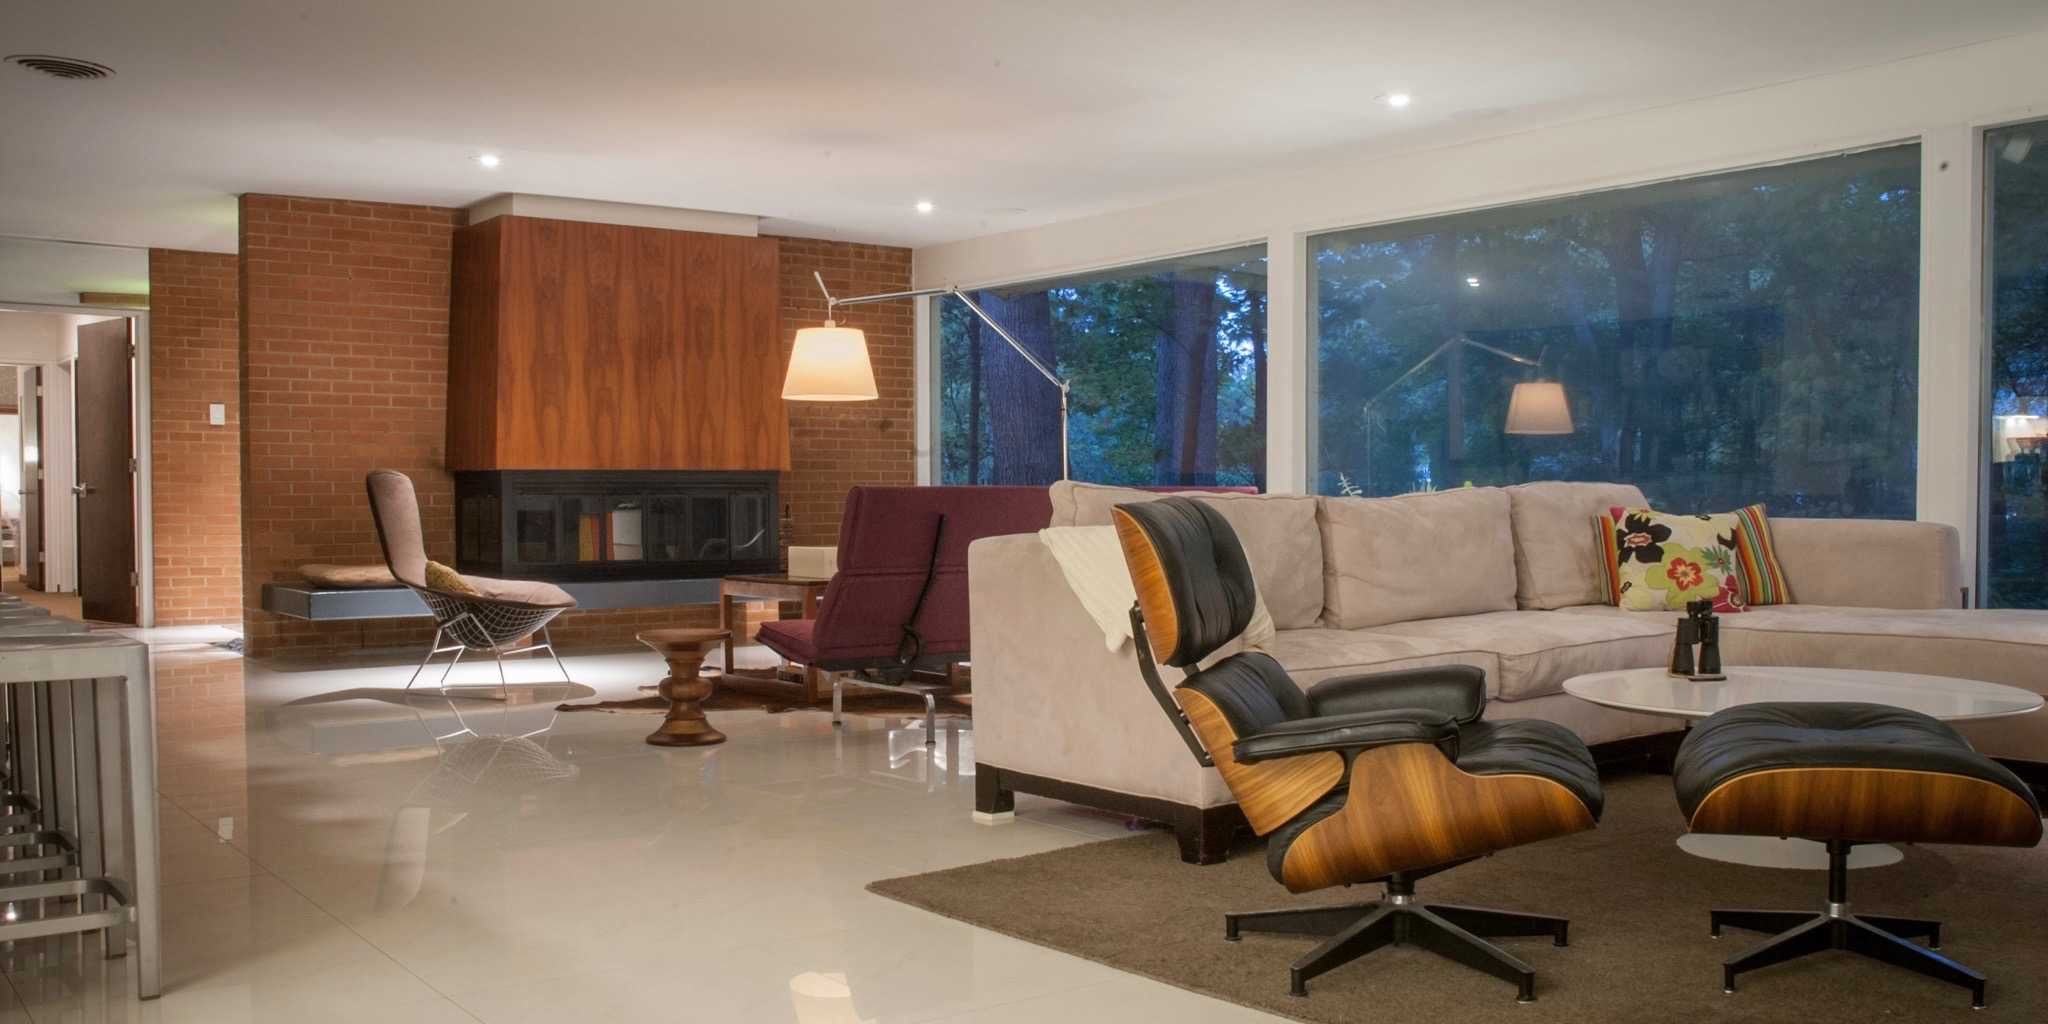 Small Garden Designs And Layouts, This Charles E King S Mid Century House Is A Declaration Of Love Mid Century Home